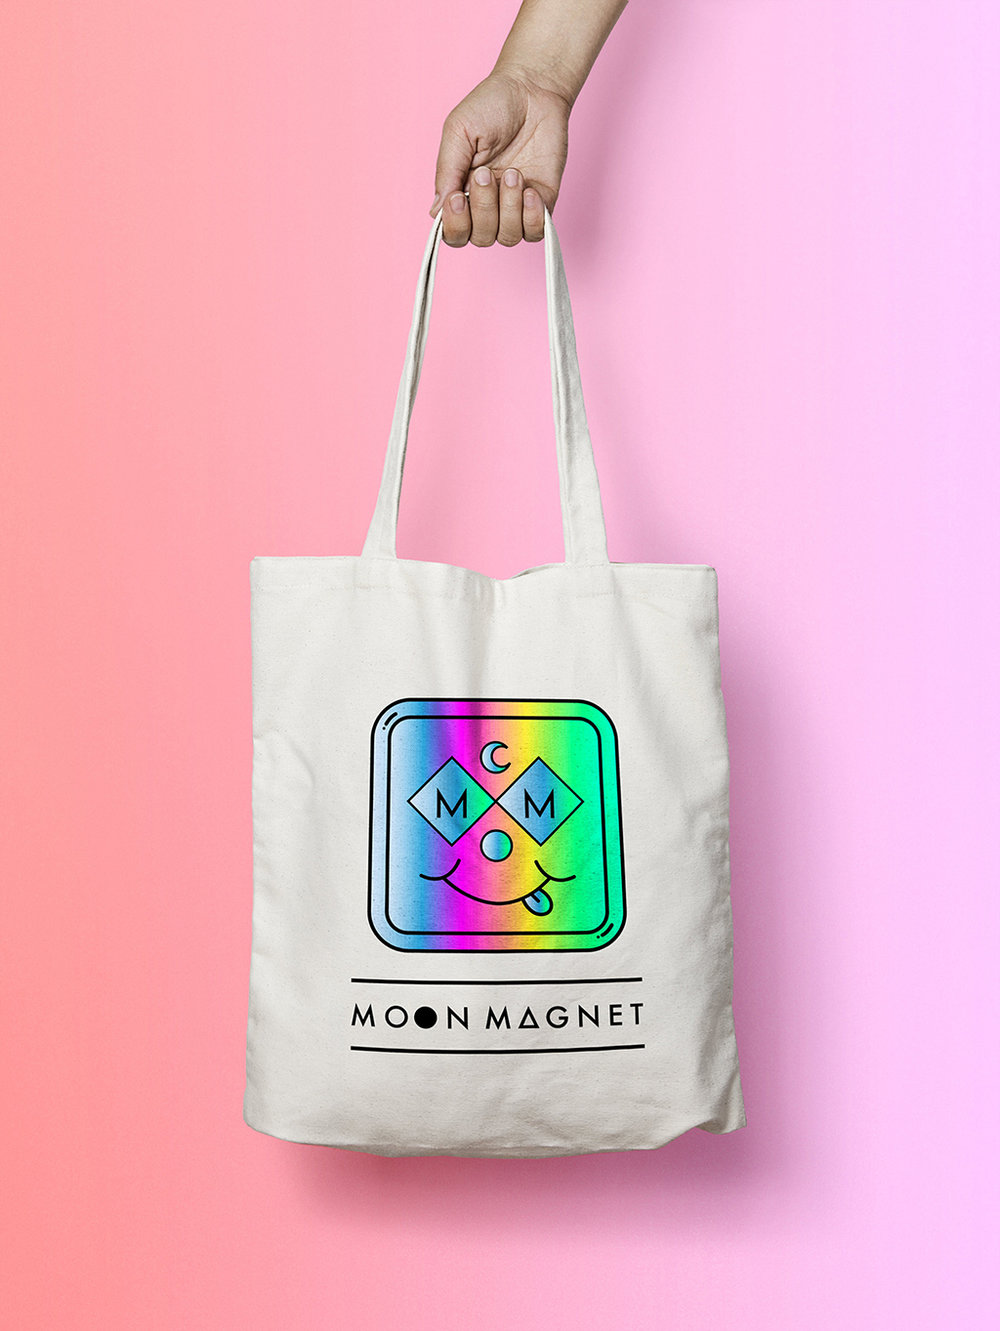 moon_magnet_tote_bag.jpg